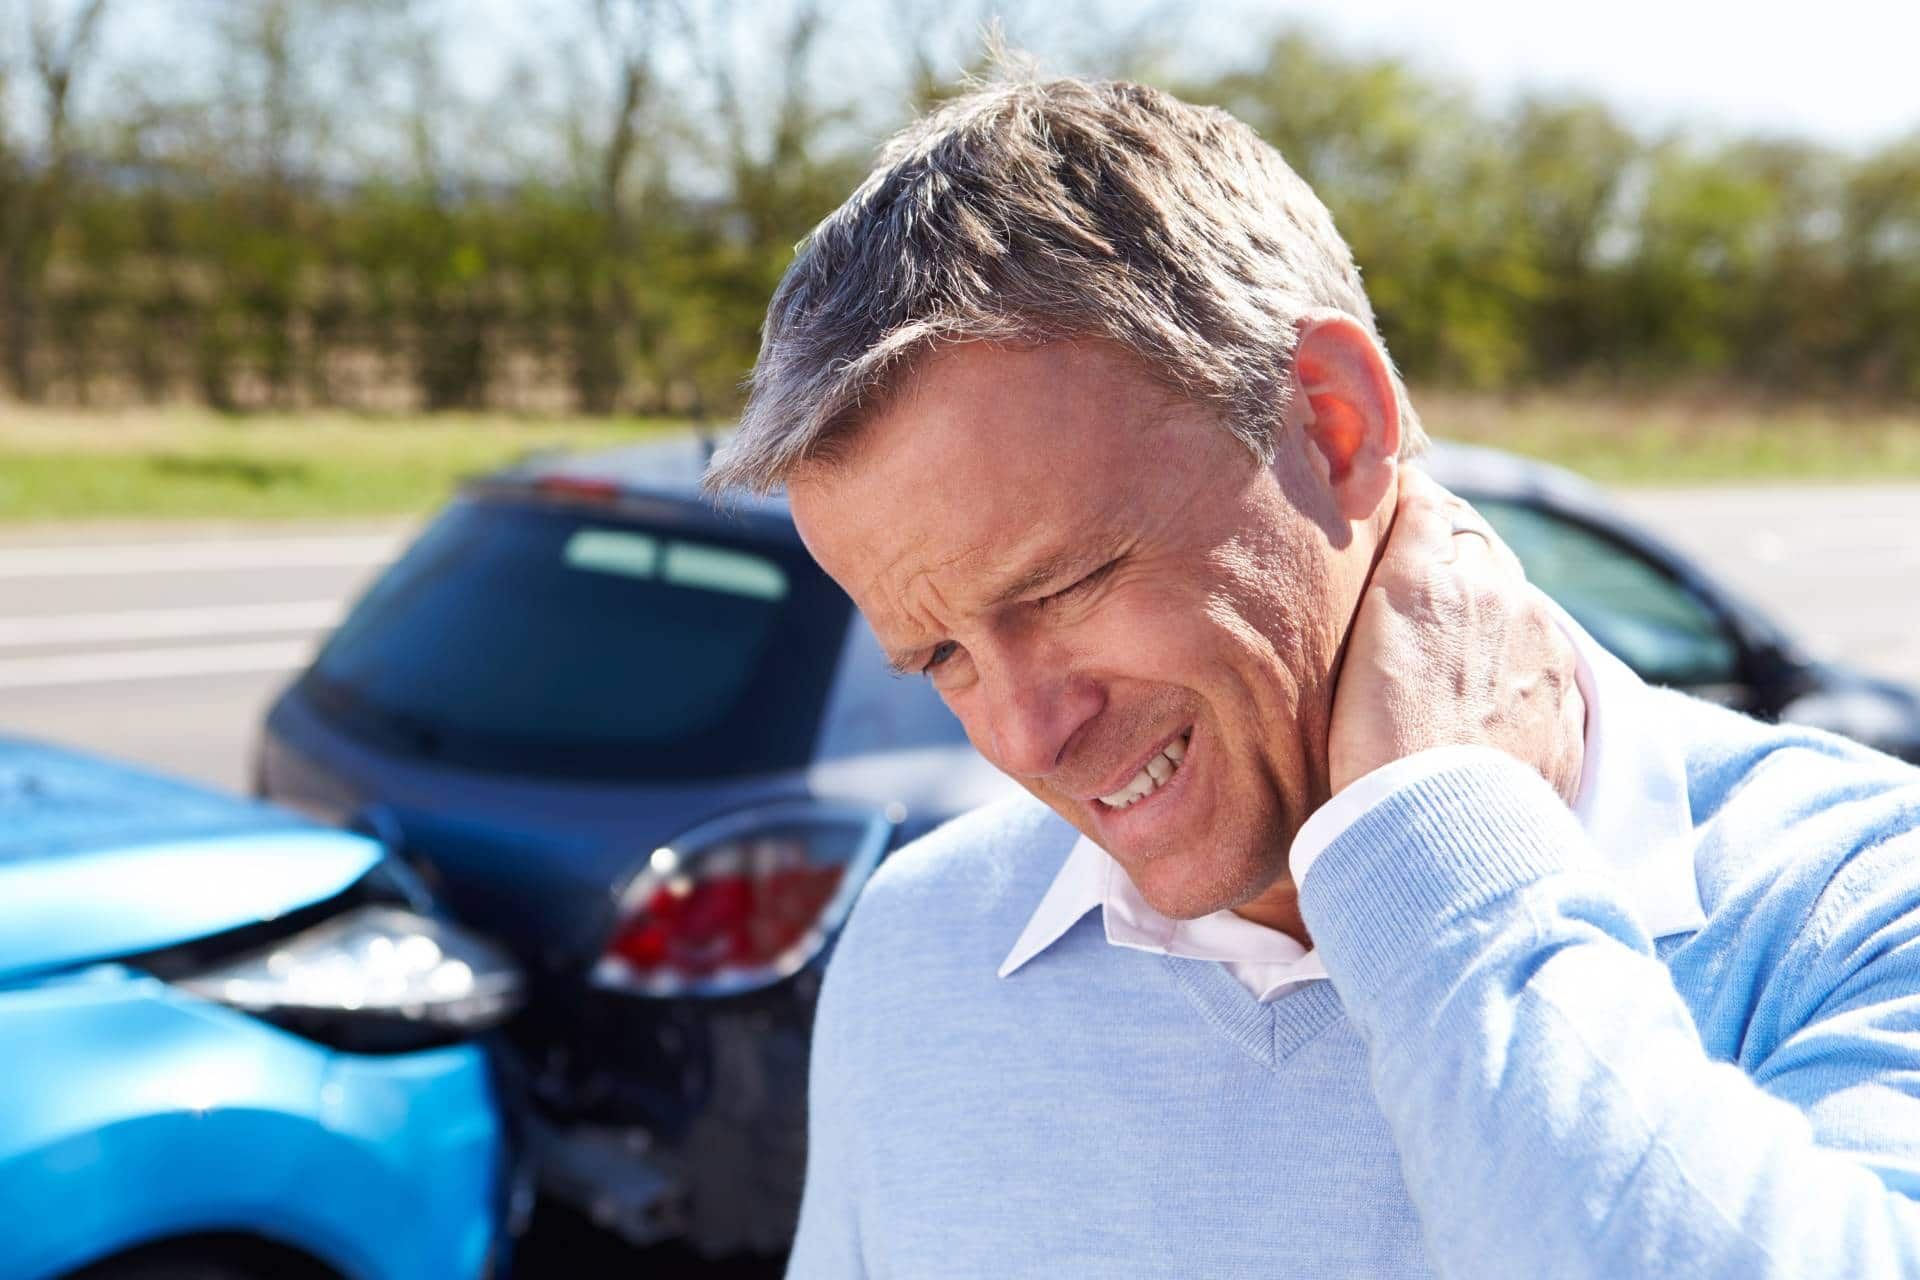 Injured in an auto accident? Schedule a free consultation with our personal injury lawyers at the Angell Law Firm.